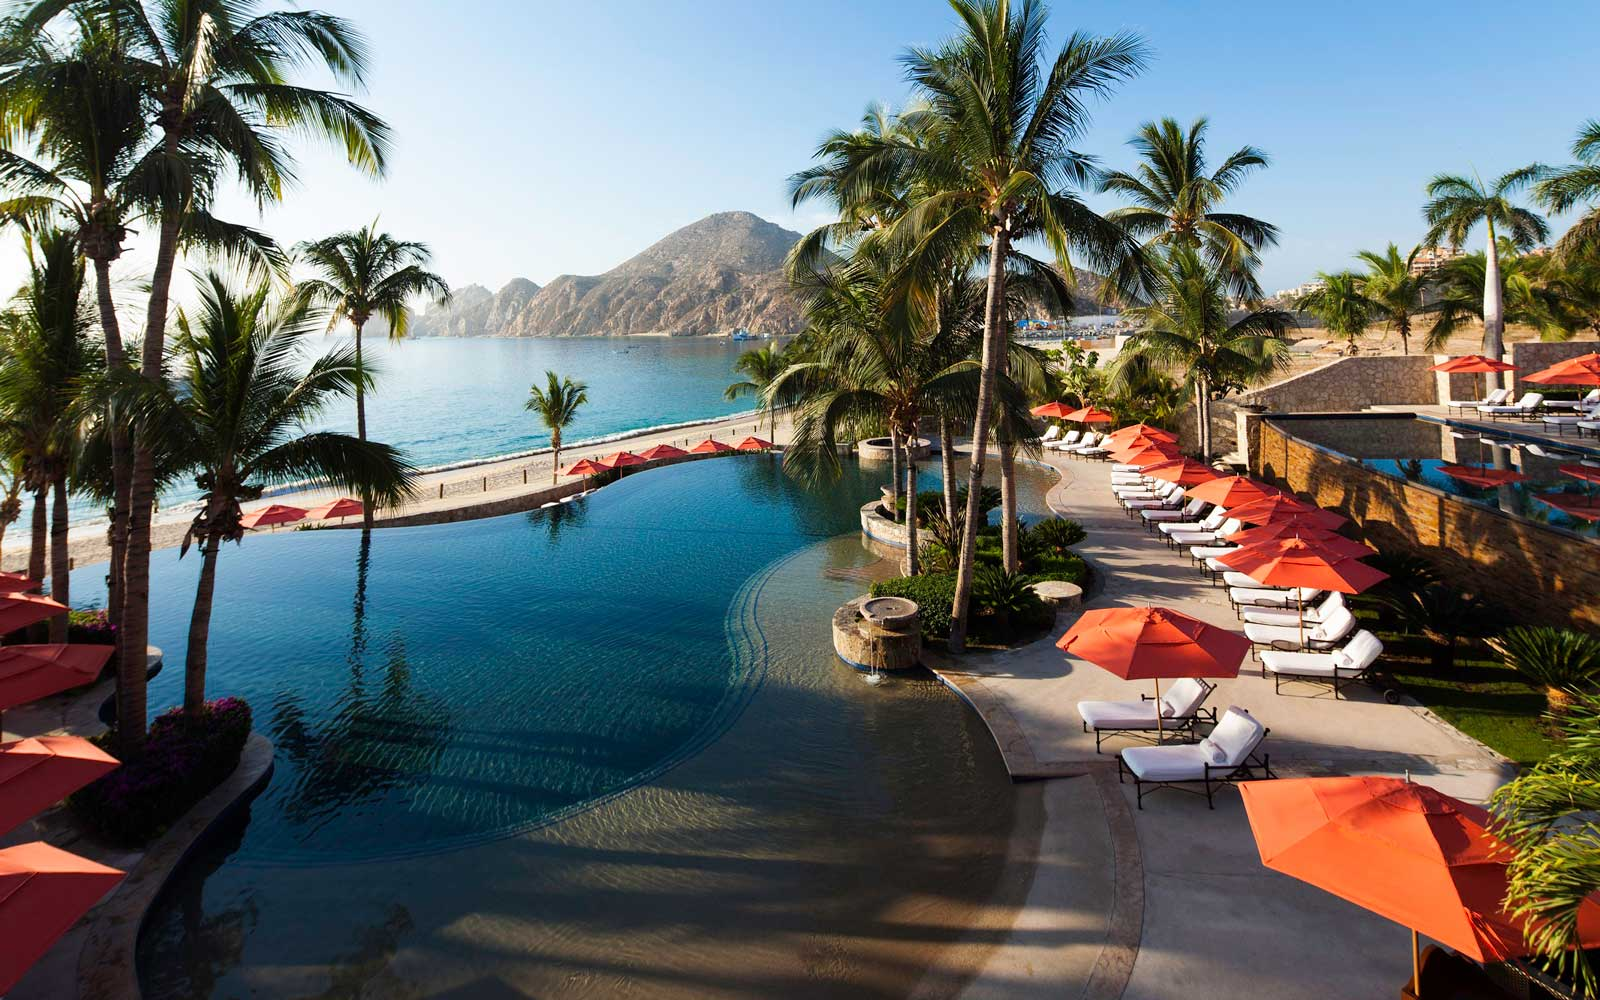 Enjoy 33% off Stays at This This Family-Friendly Beach Resort in Cabo San Lucas